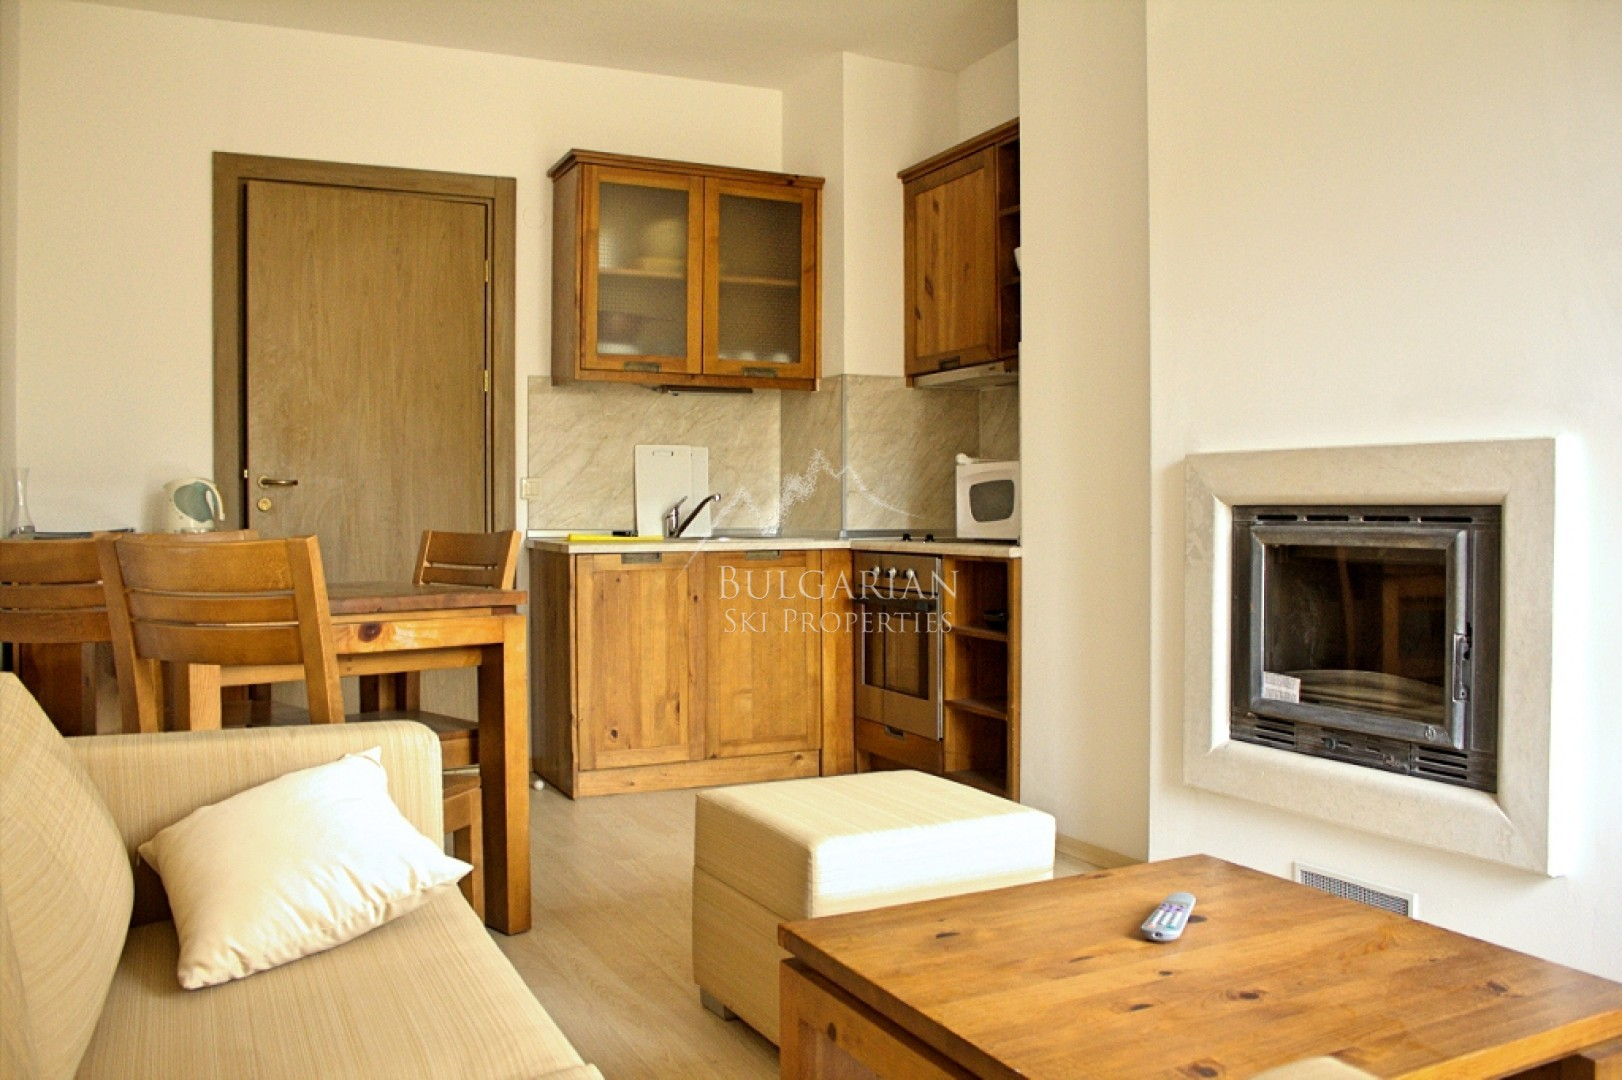 Bansko: one bedroom apartment with mountain views for sale in St John Hill complex